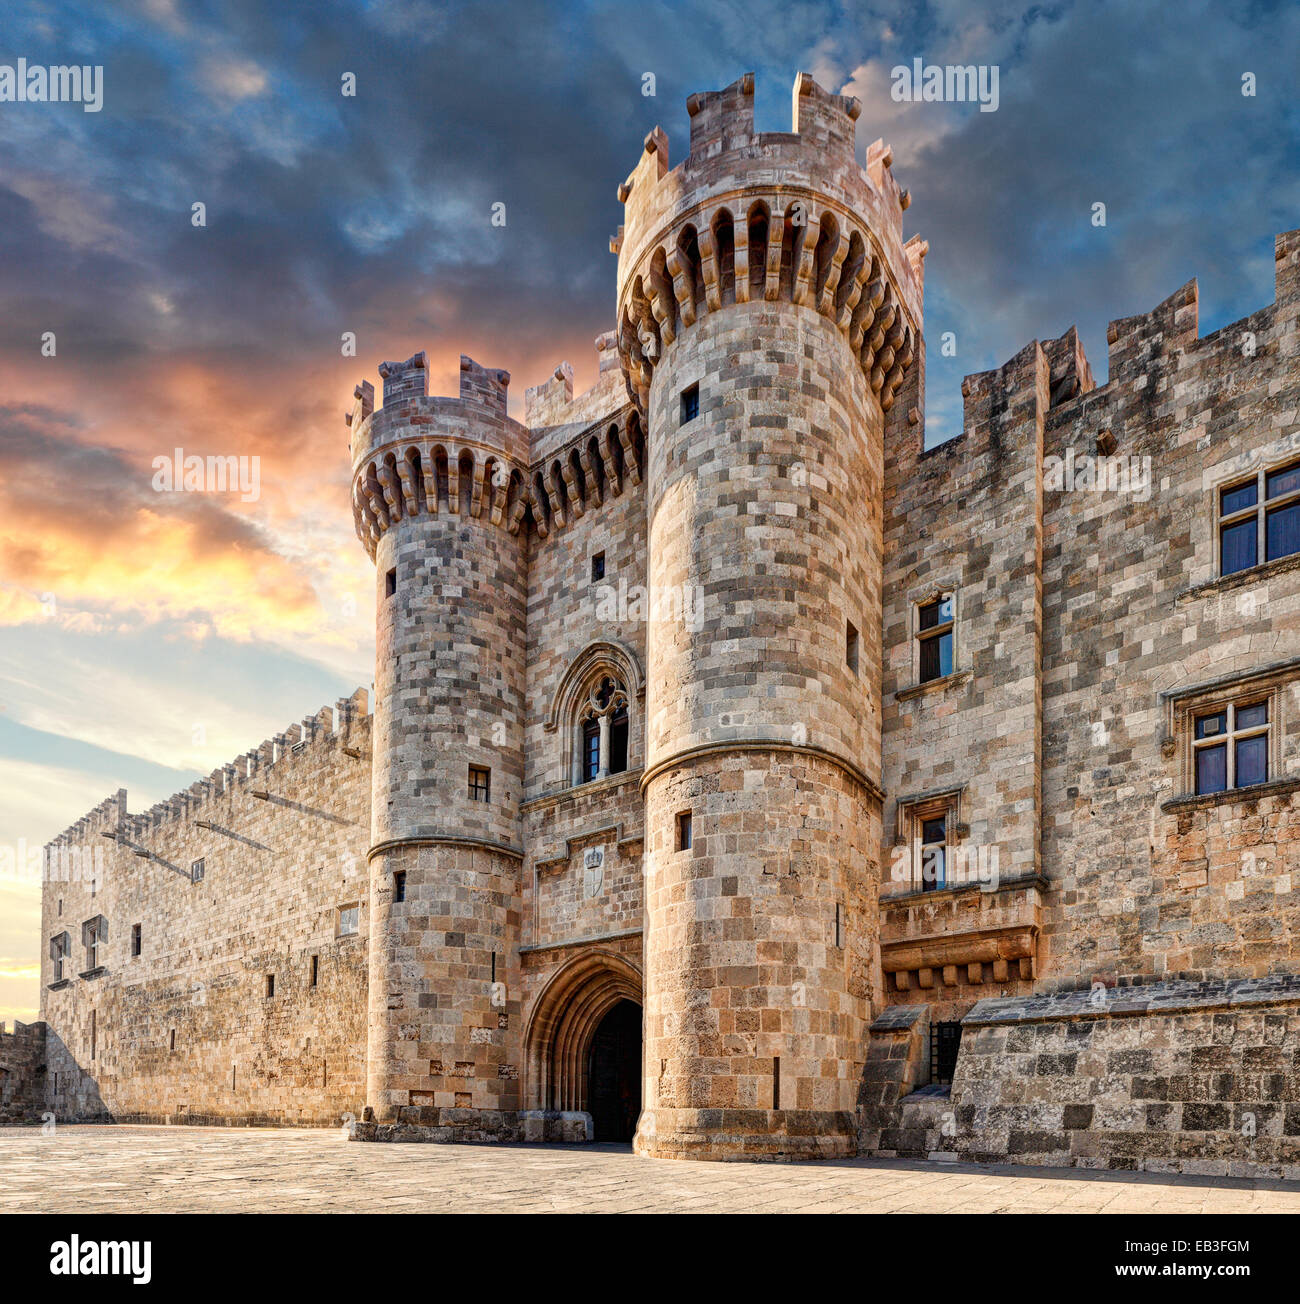 The Palace of the Grand Master of the Knights is a ...